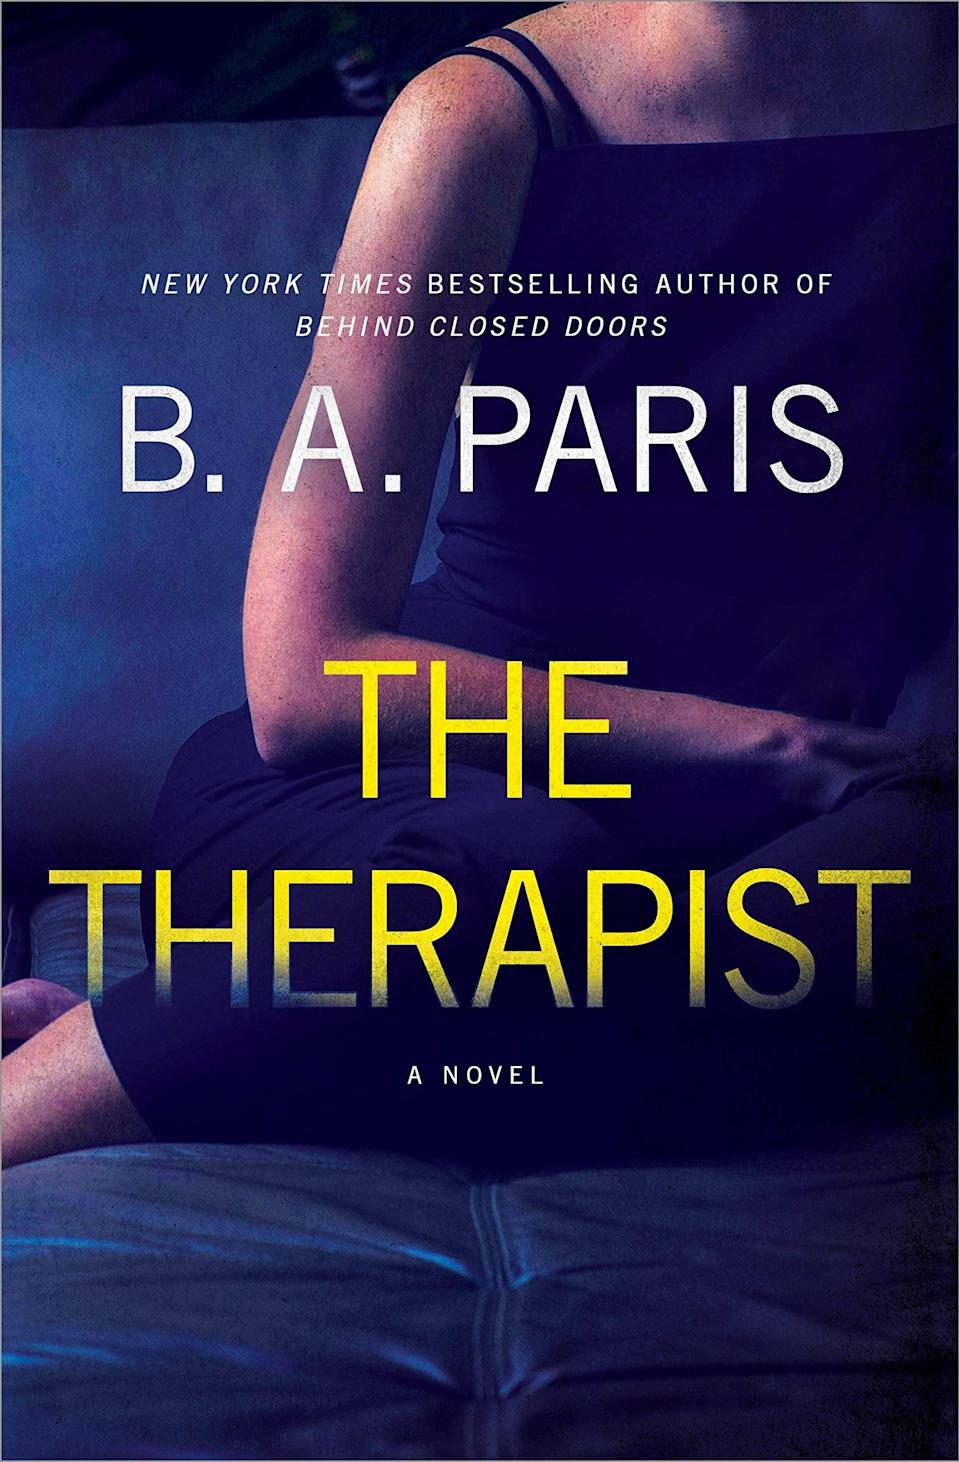 <p><span><strong>The Therapist</strong></span> by B.A. Paris turns a couple's dream home into a nightmare as they discover something terrible happened to the people who lived there before them. Now the new resident of the house, Alice, is determined to unravel the mystery of the woman who lived there, even though her neighbors refuse to talk about what happened there two years before. </p> <p><em>Out July 13</em></p>